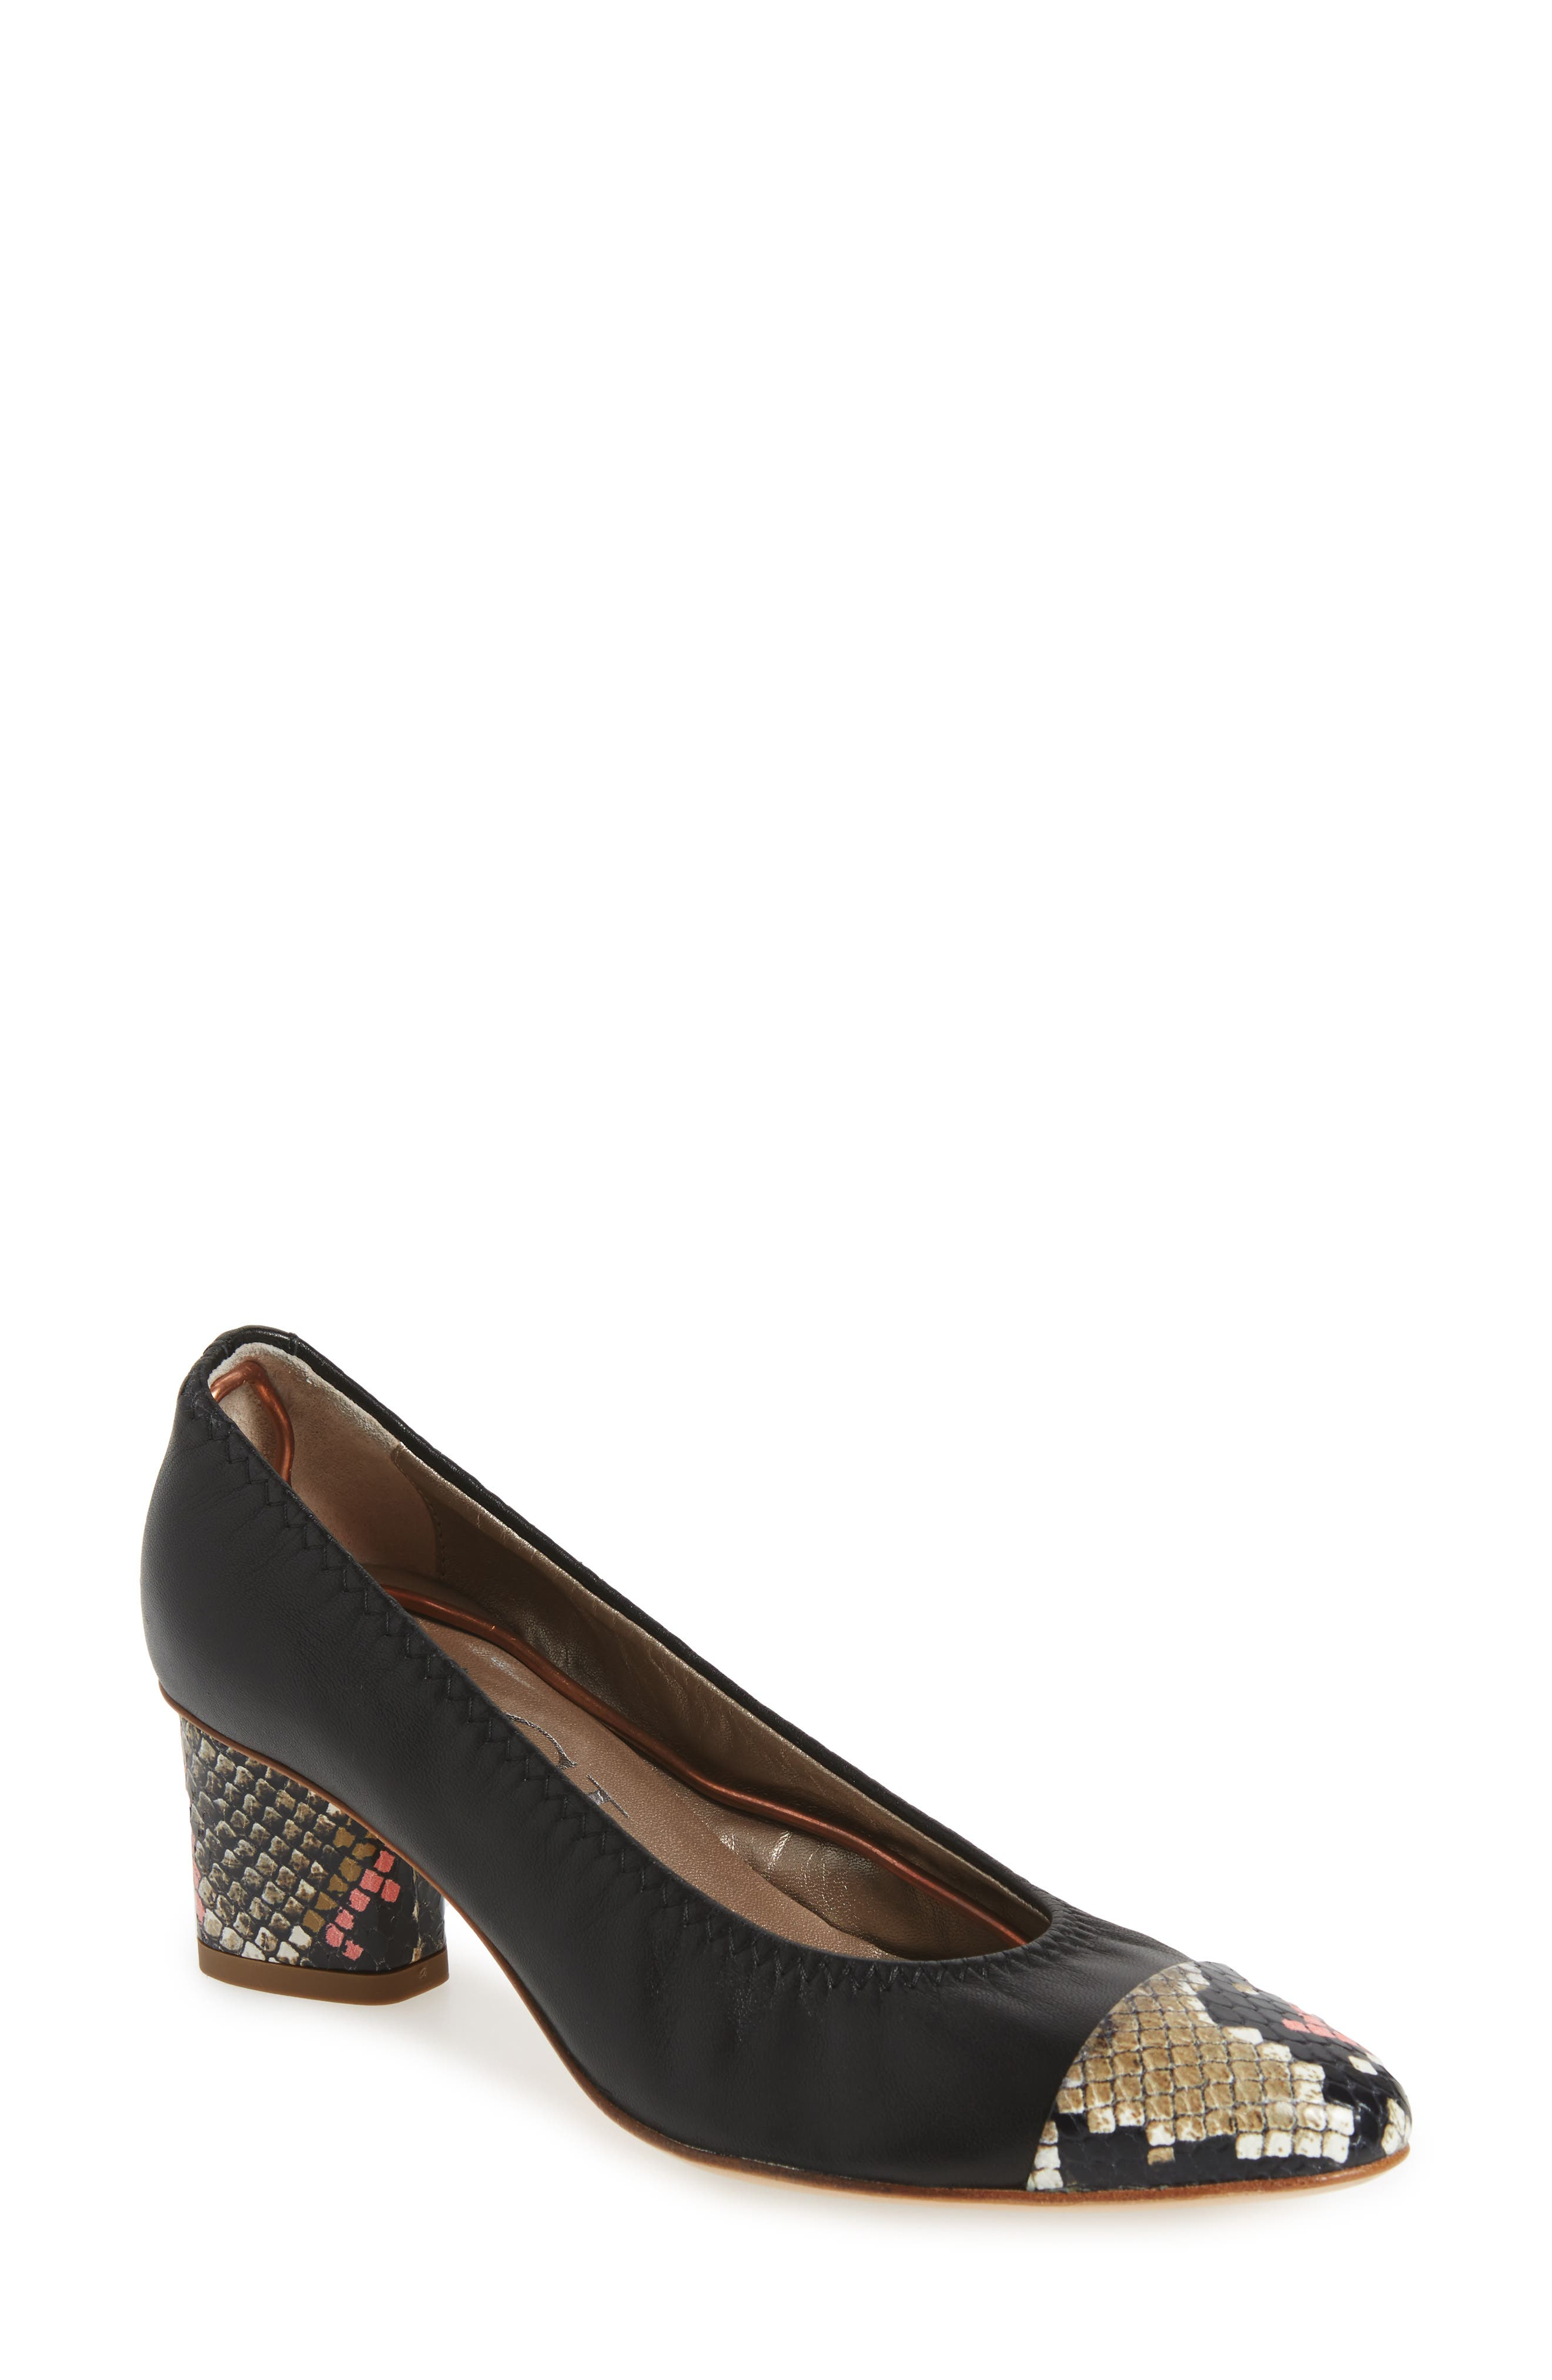 Colory Cap-Toe Pump,                             Main thumbnail 1, color,                             001